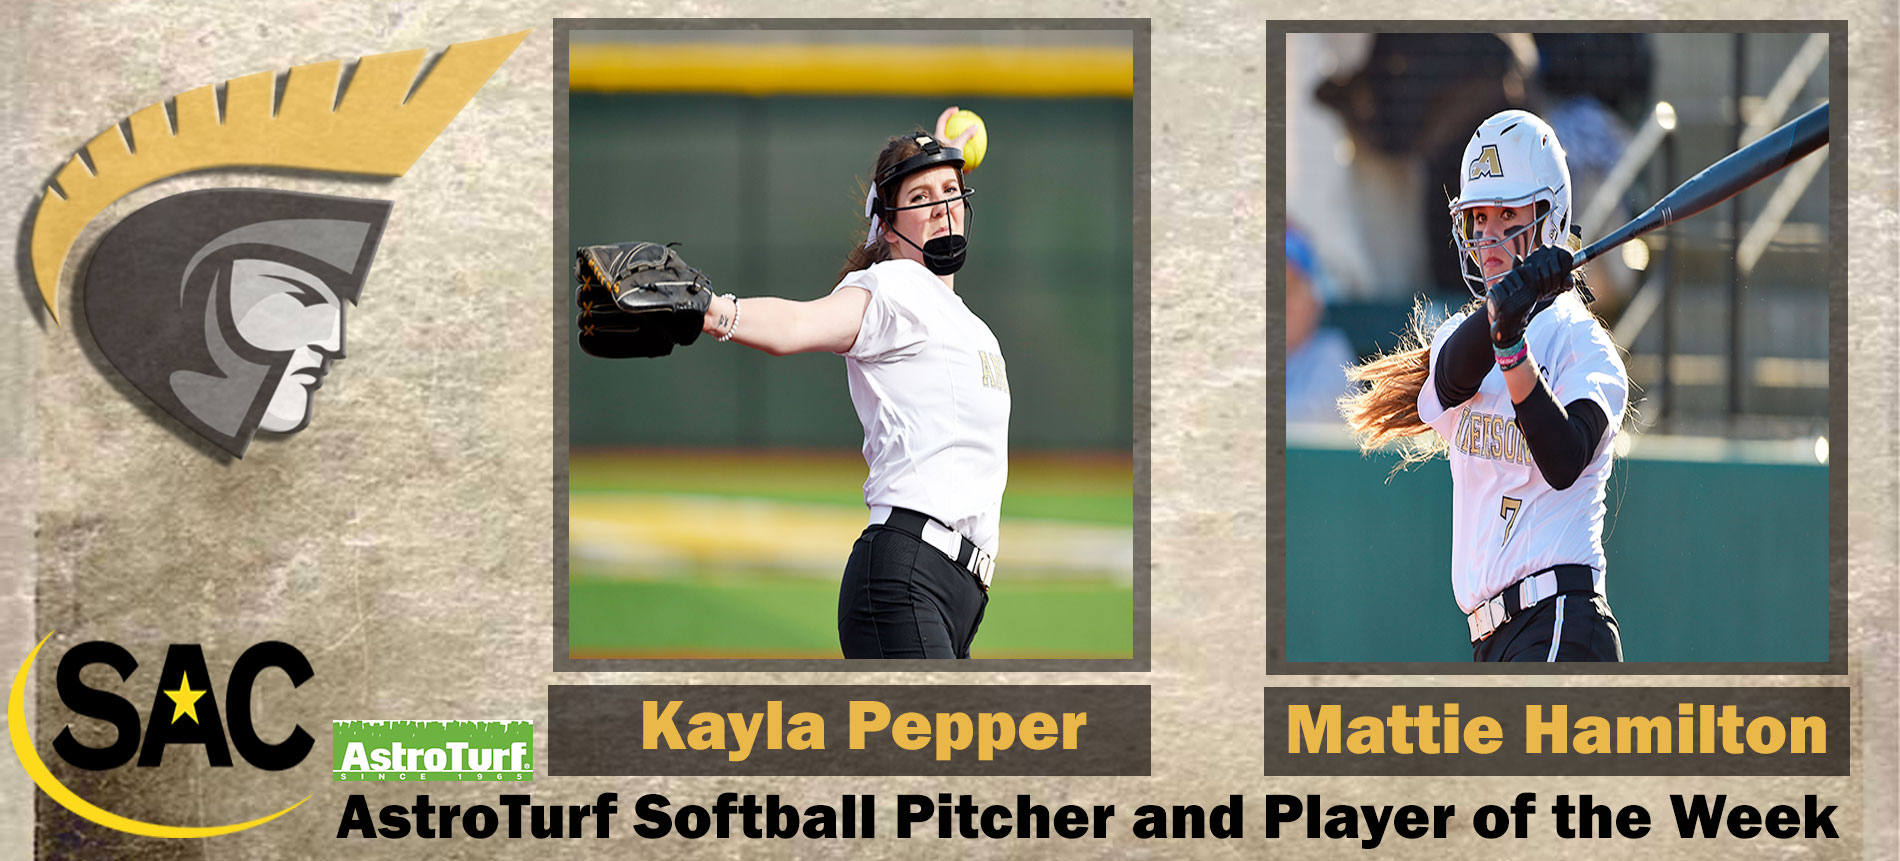 Hamilton and Pepper Earn SAC AstroTurf Softball Player of the Week